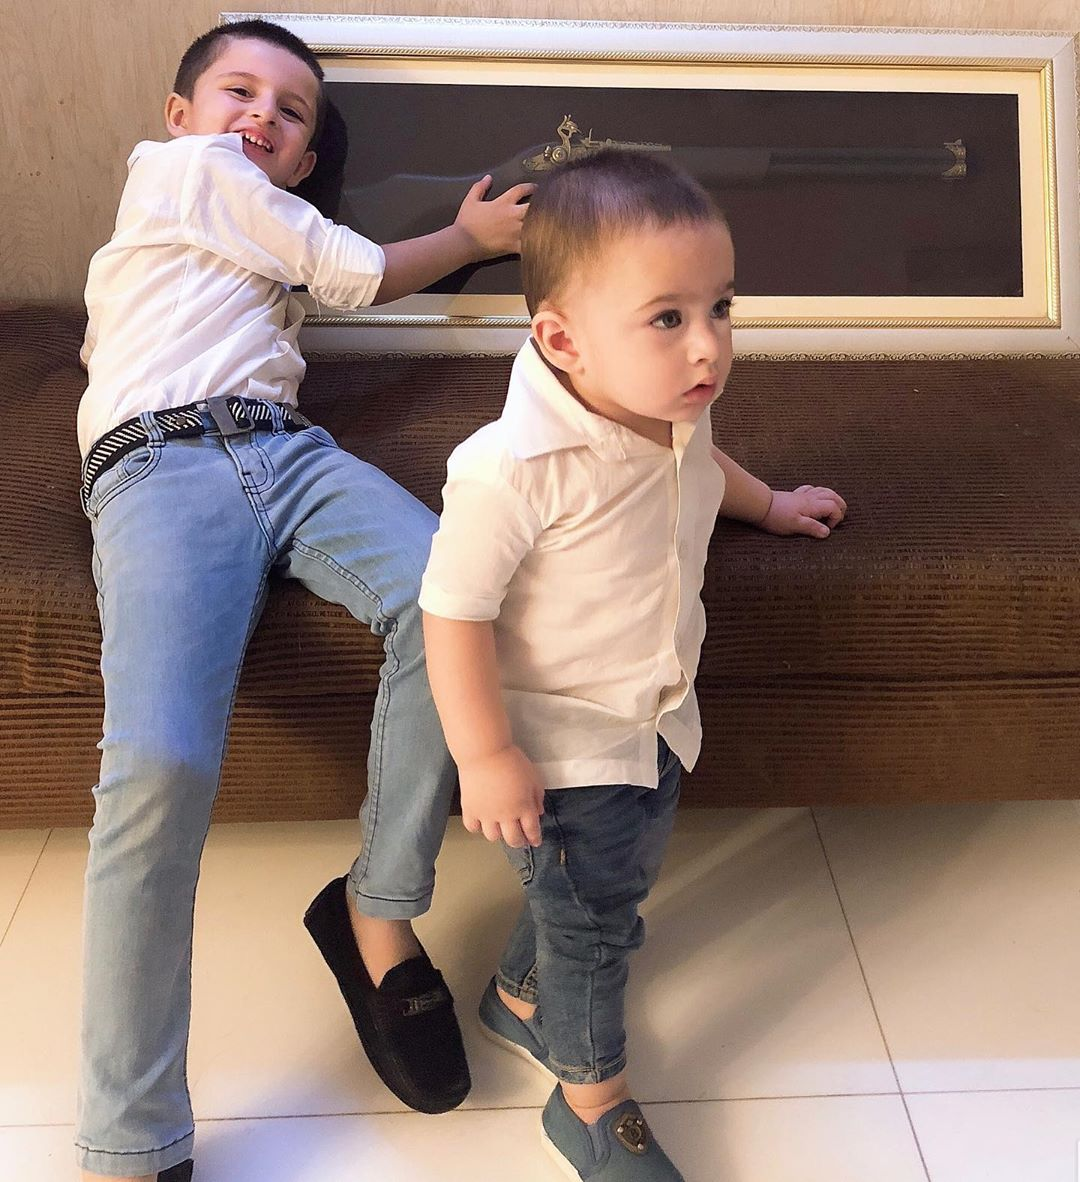 Latest Clicks of Fatima Effendi and Kanwar Arsalan with their Kids